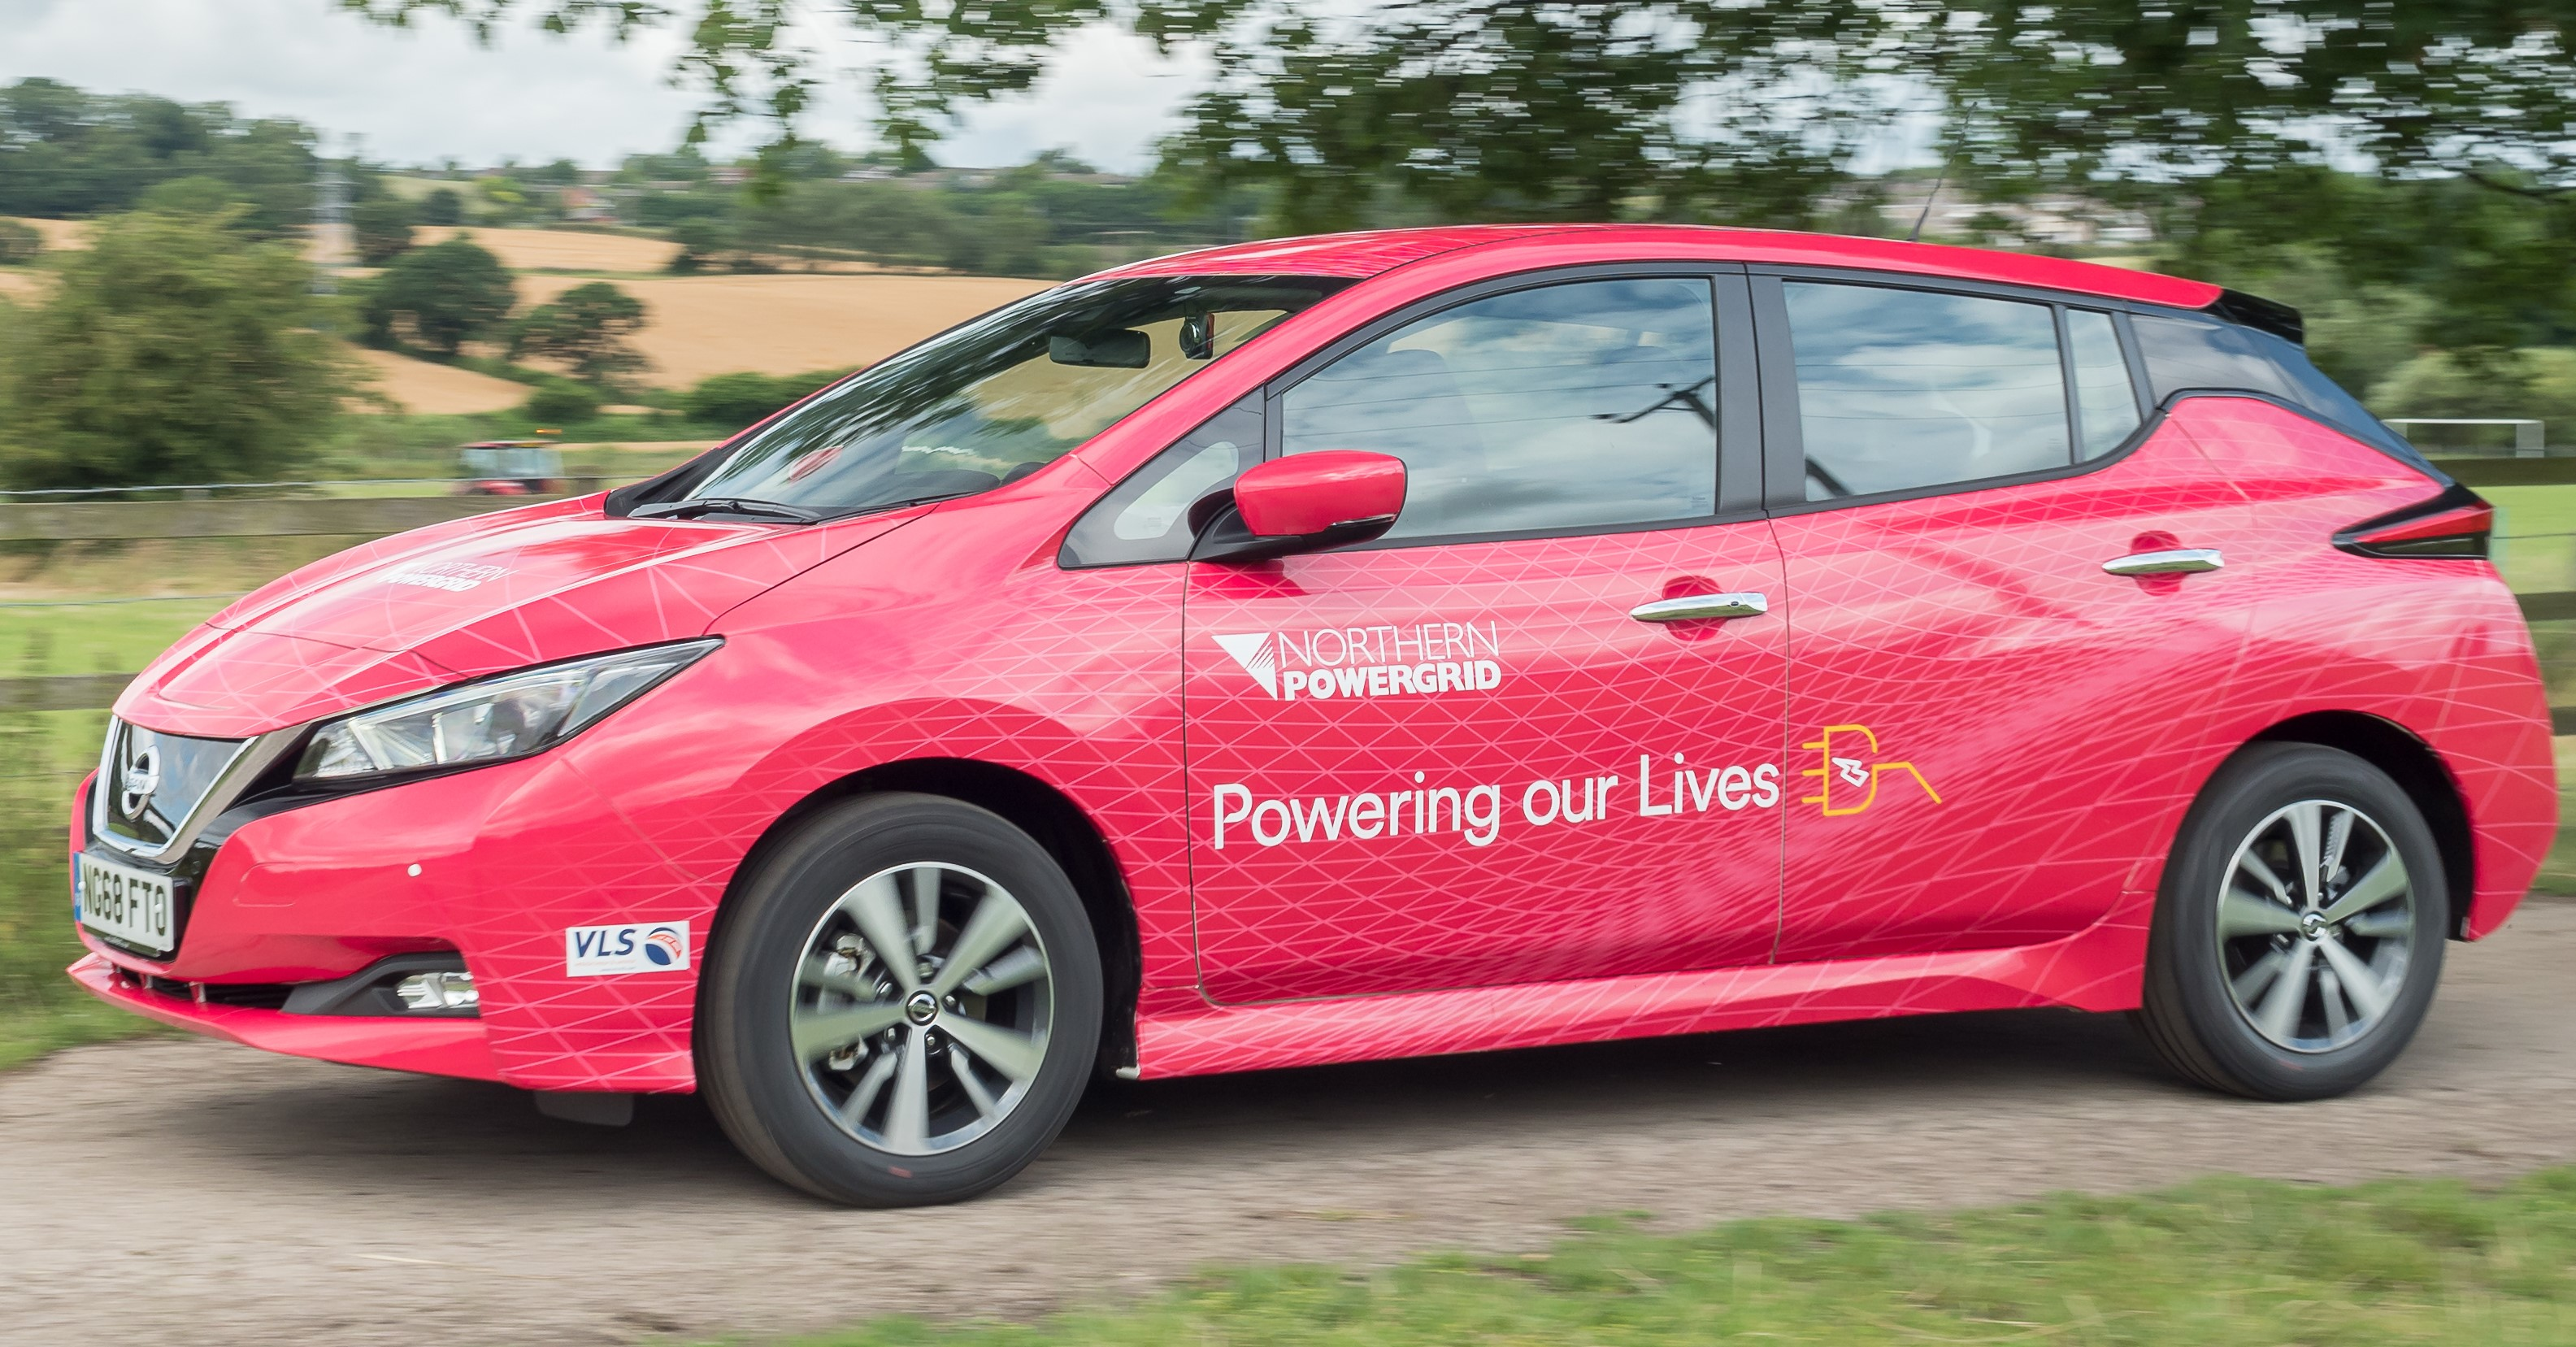 Image showing Northern Powergrid's Nissan leaf vehicle